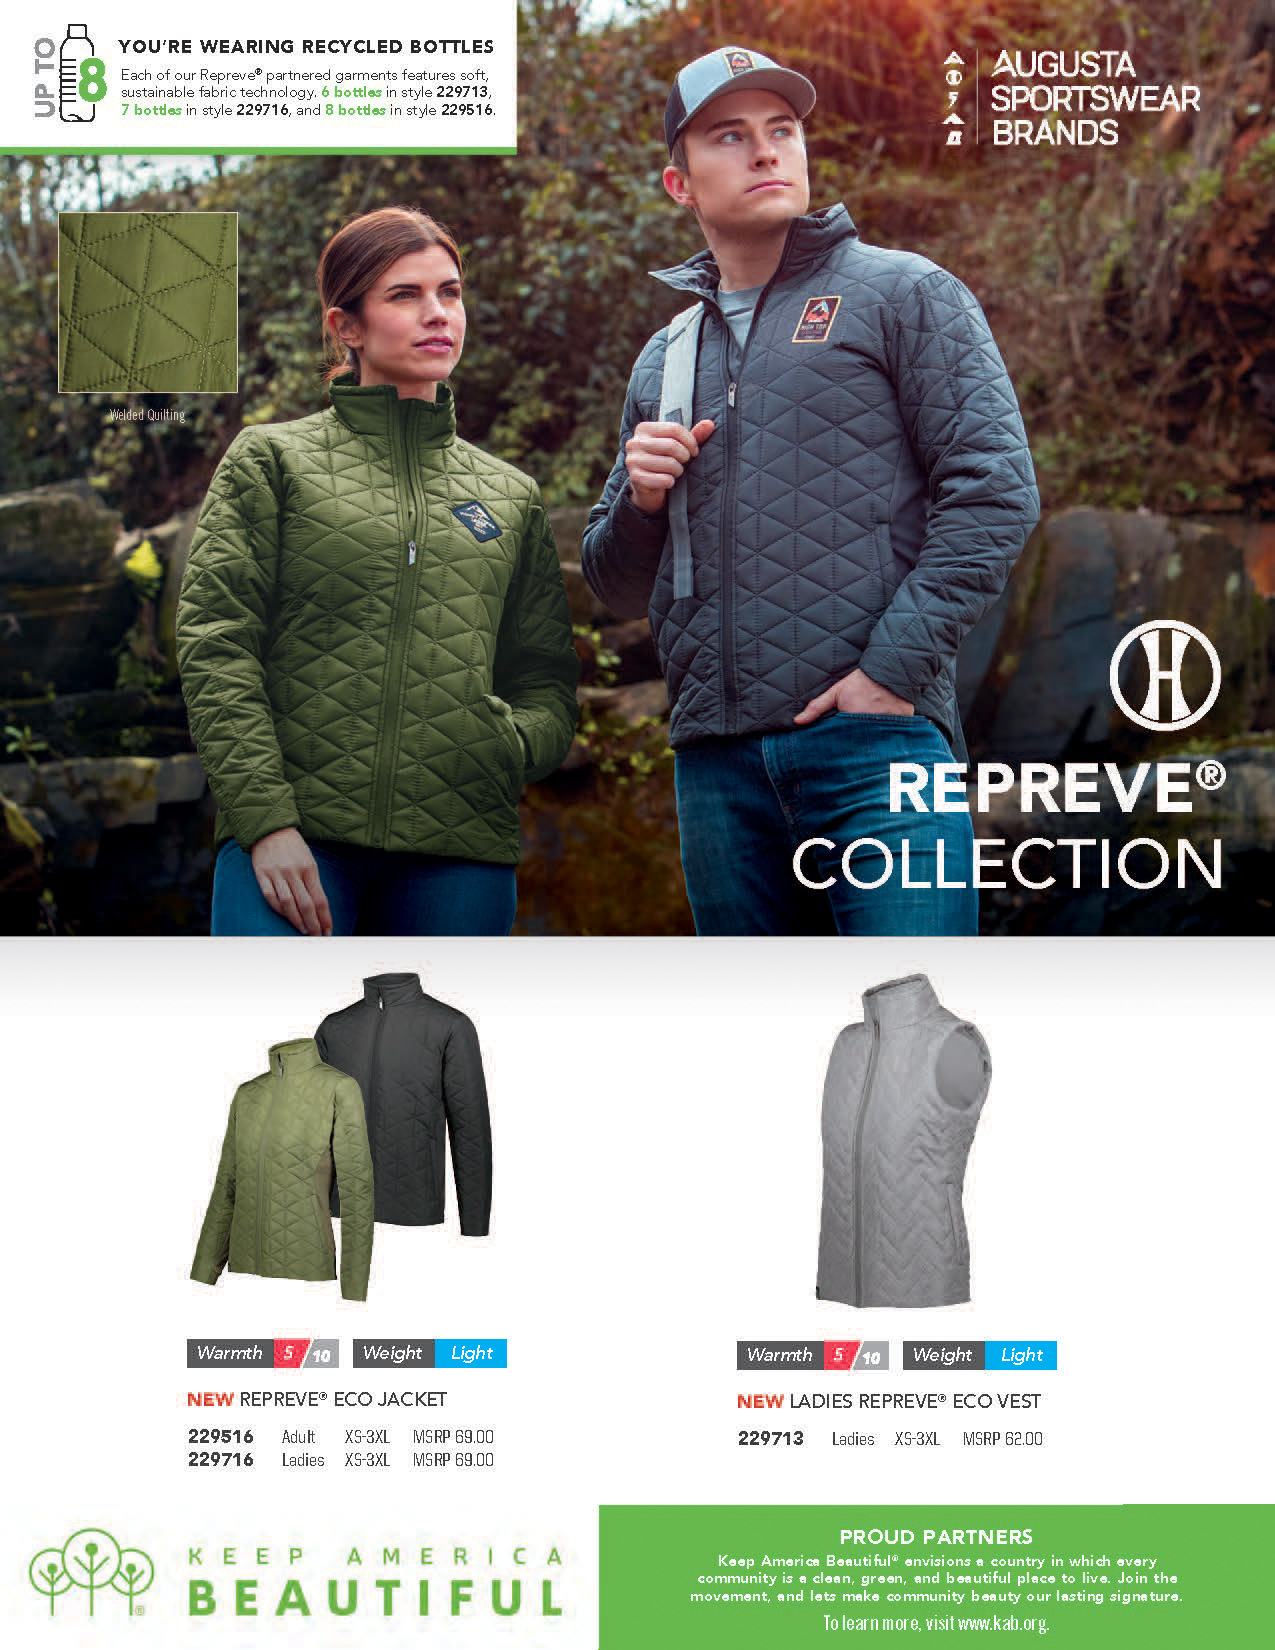 All new Repreve® Collection